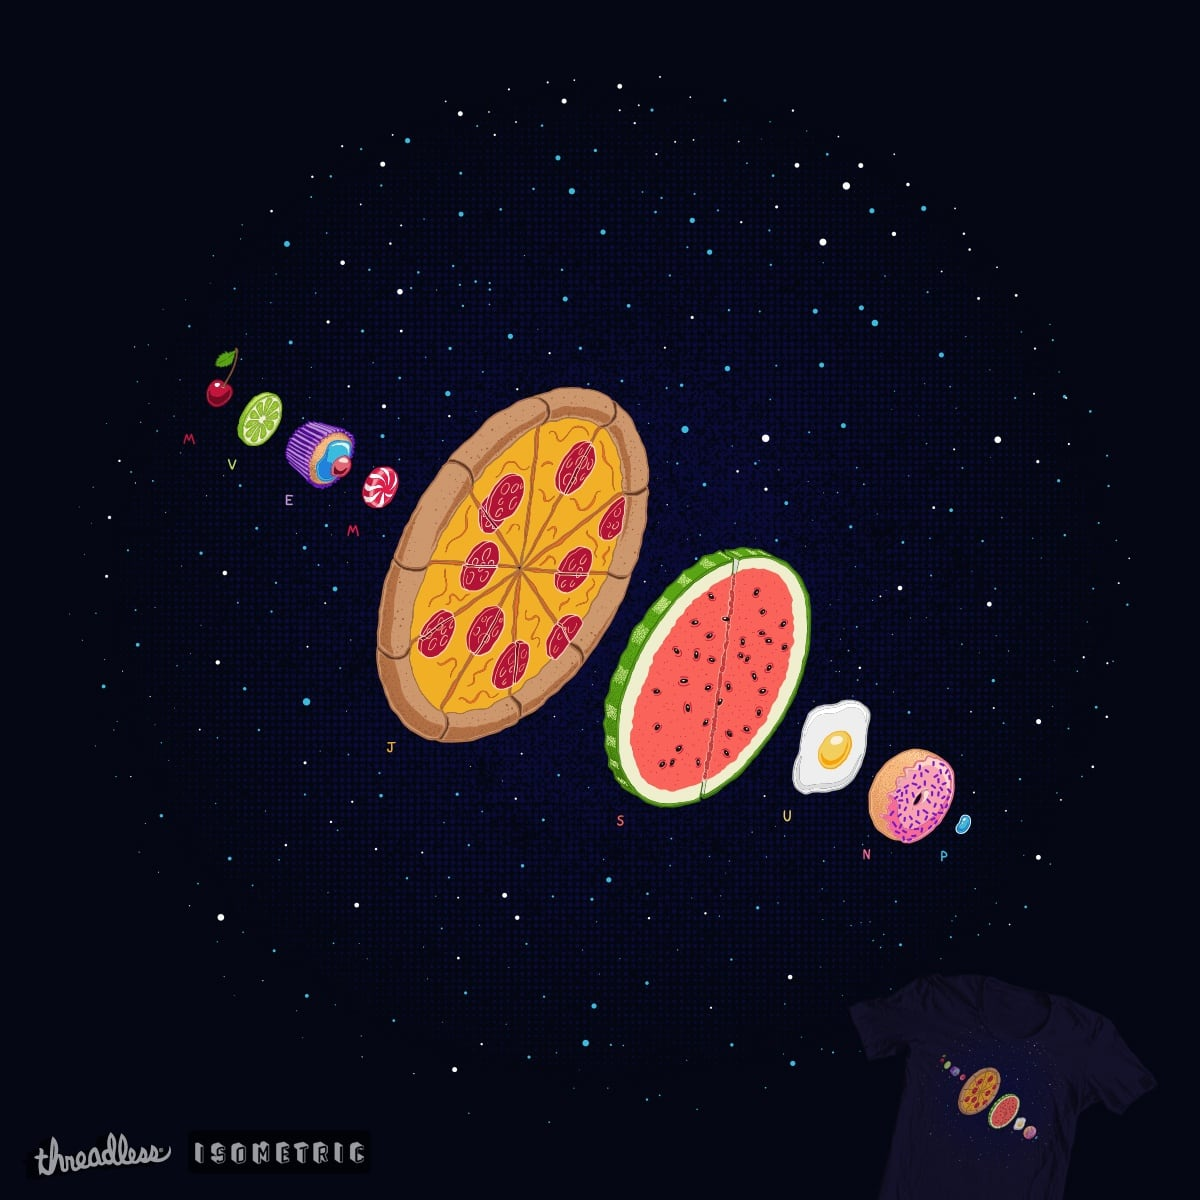 Gastronomy (if Earth was a cupcake) by SpennieDraw on Threadless